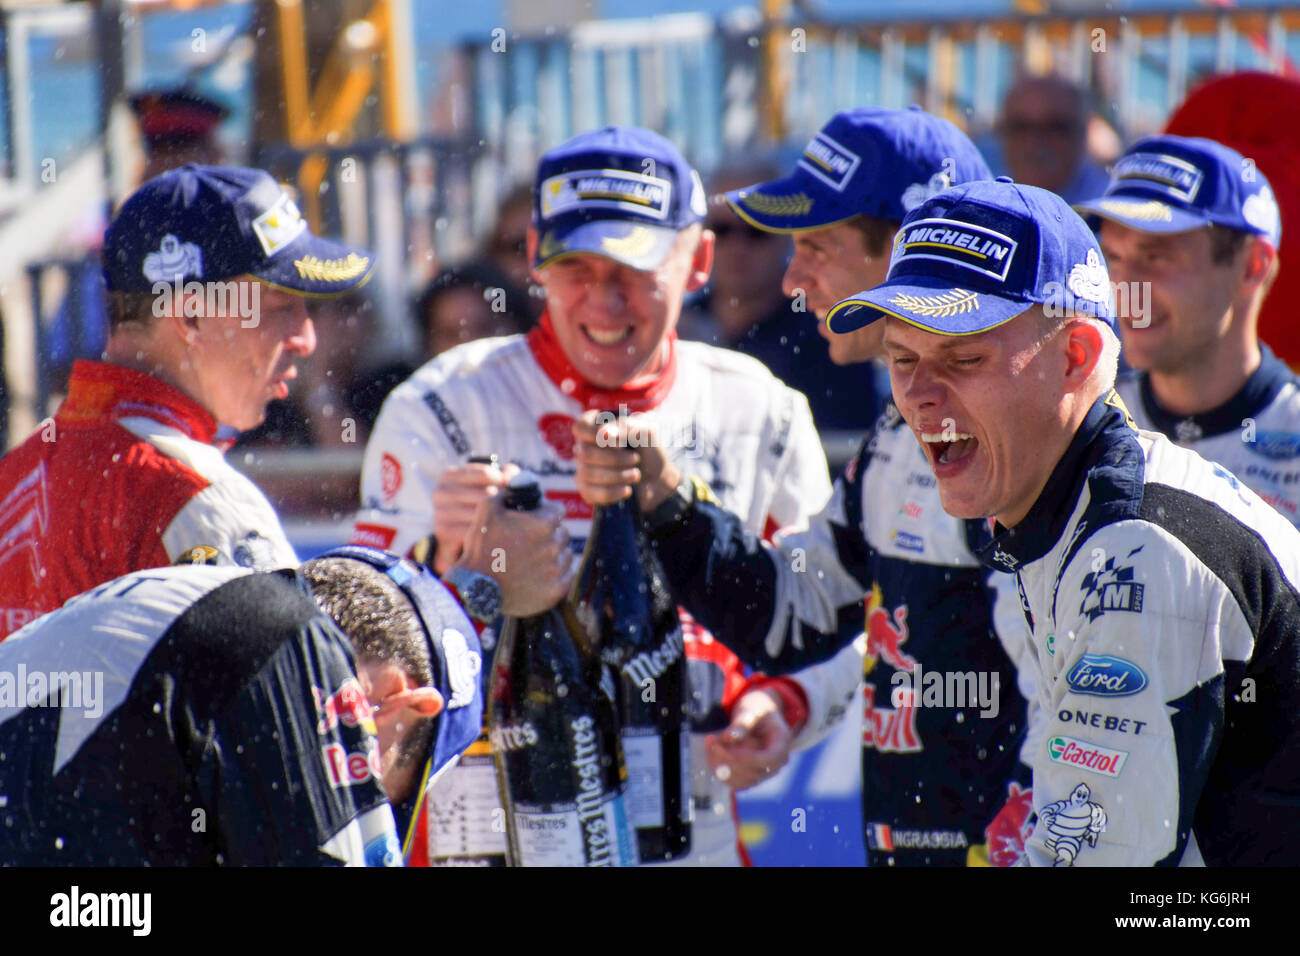 Winning drivers celebrate following the Rally de España round of the ...